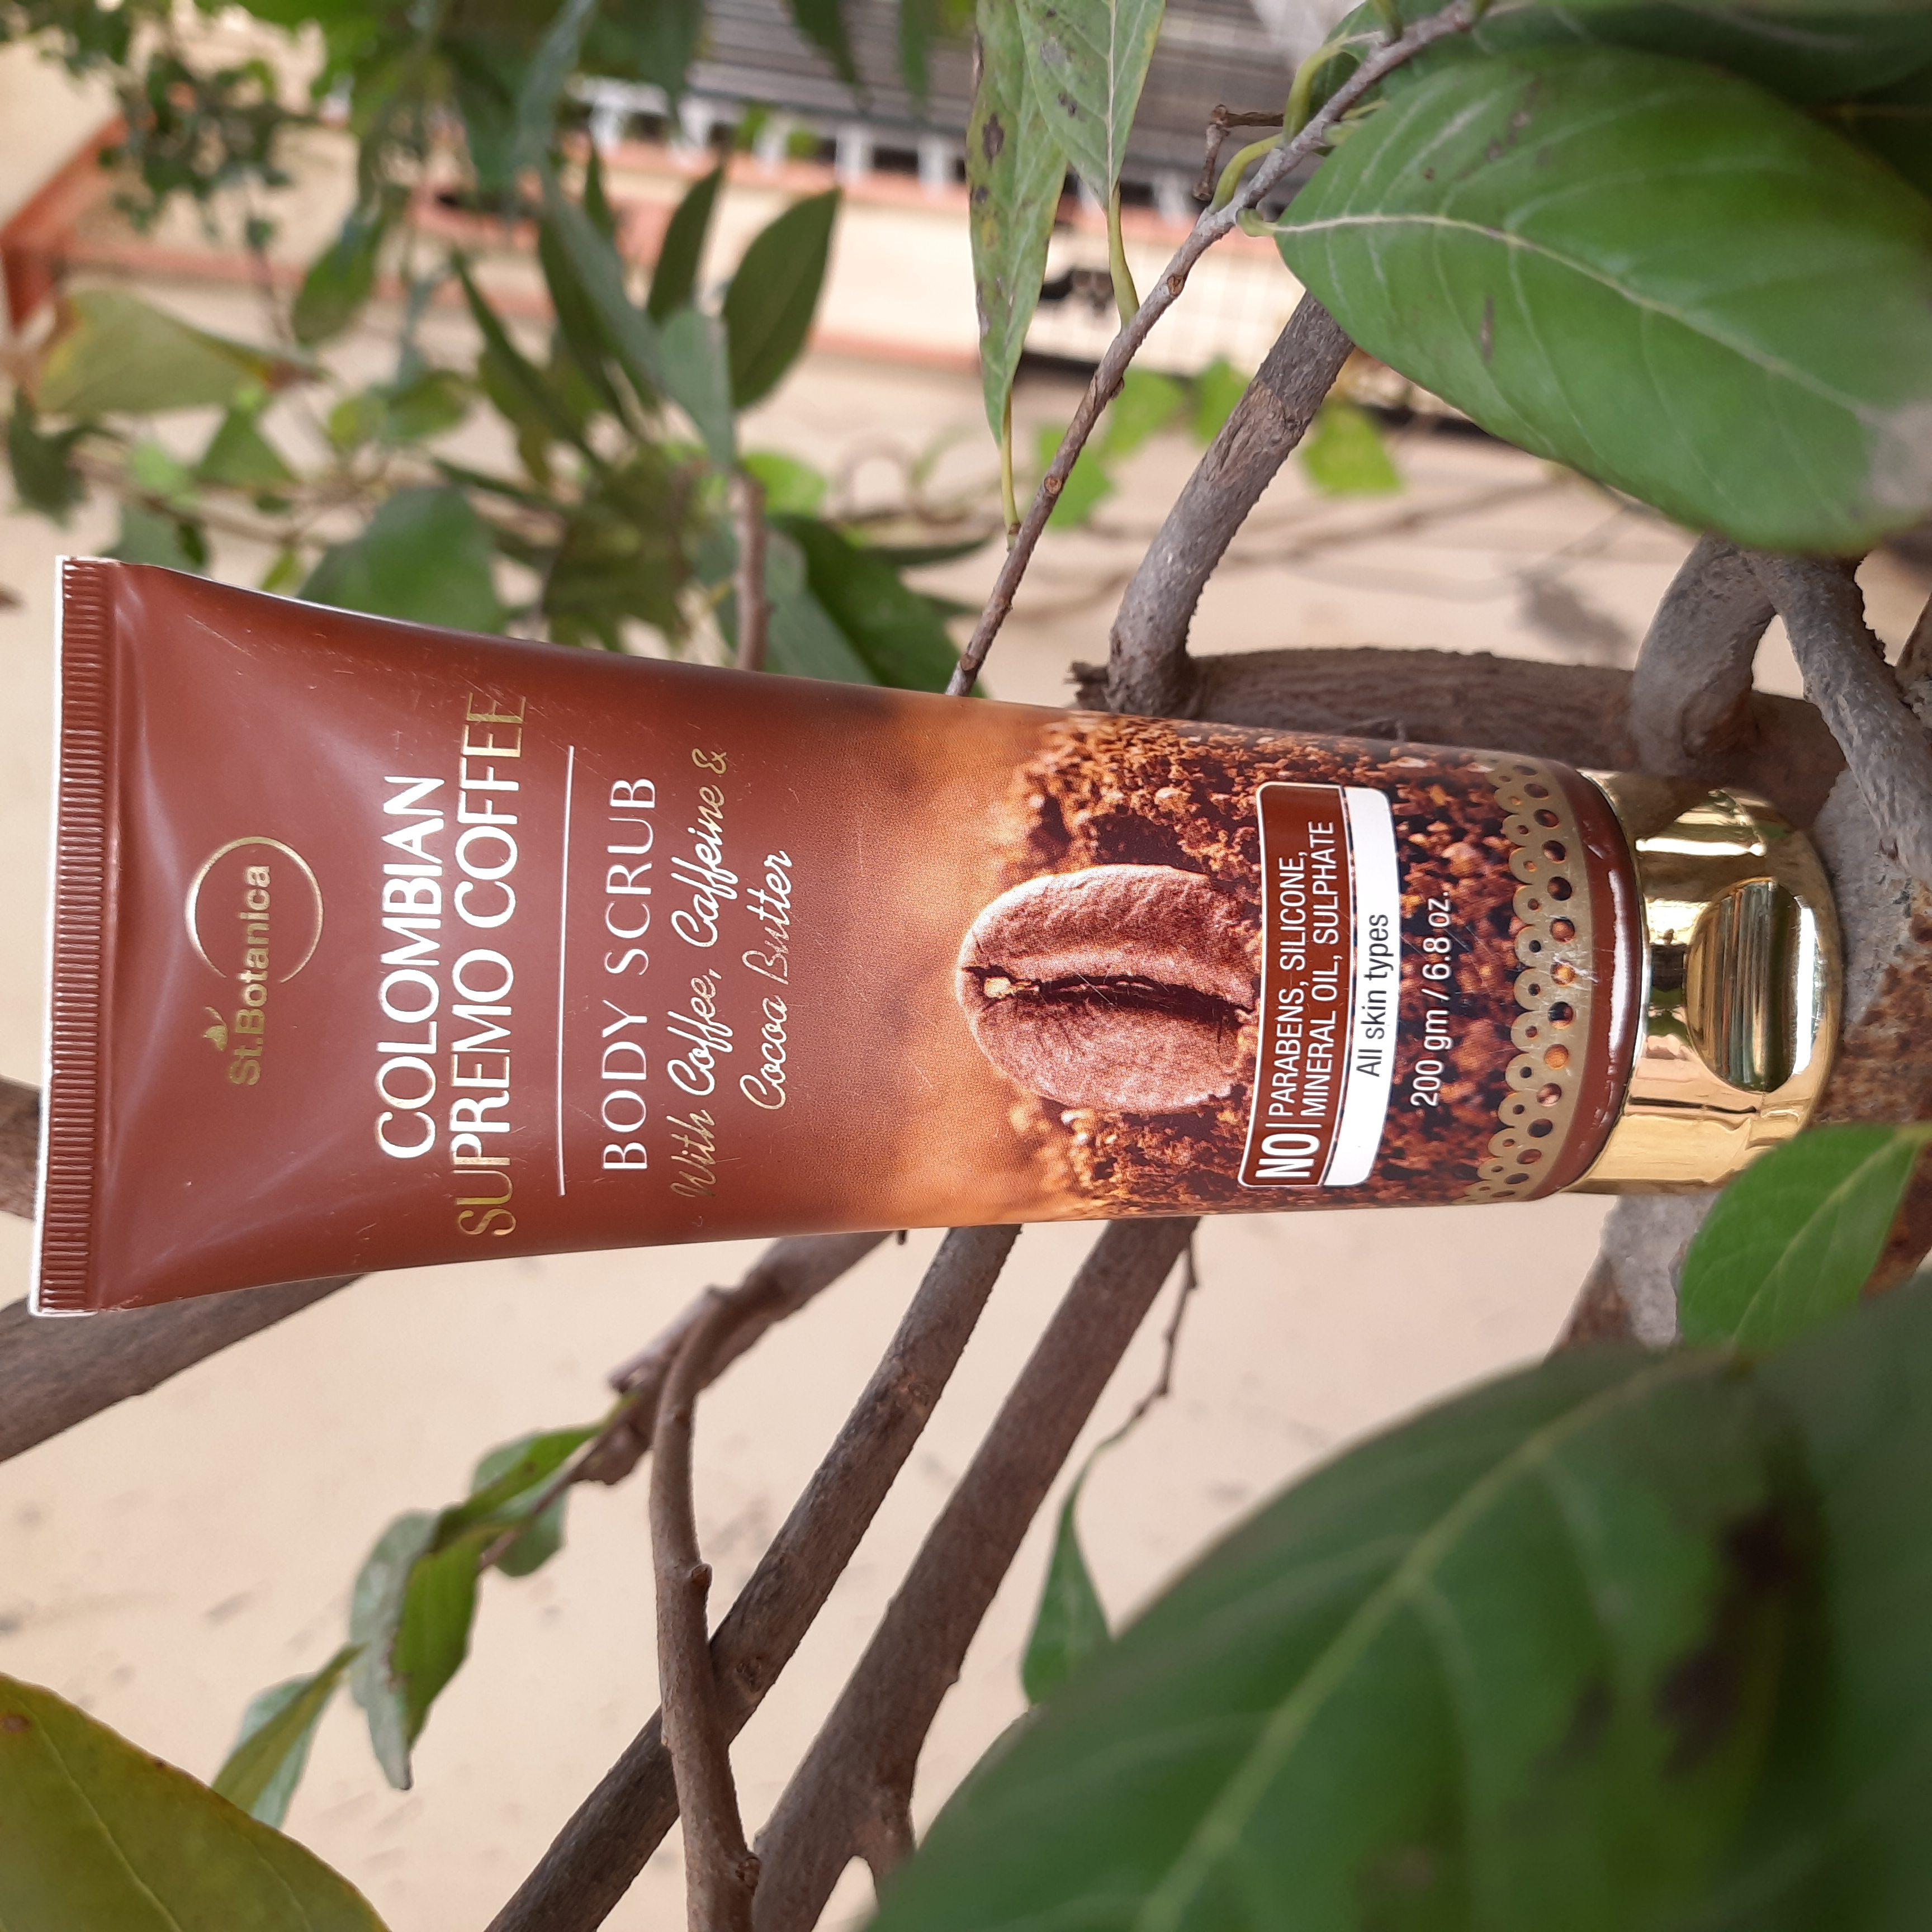 St.Botanica Arabica Coffee Face Scrub -Highly recommended-By supriyaprasad12